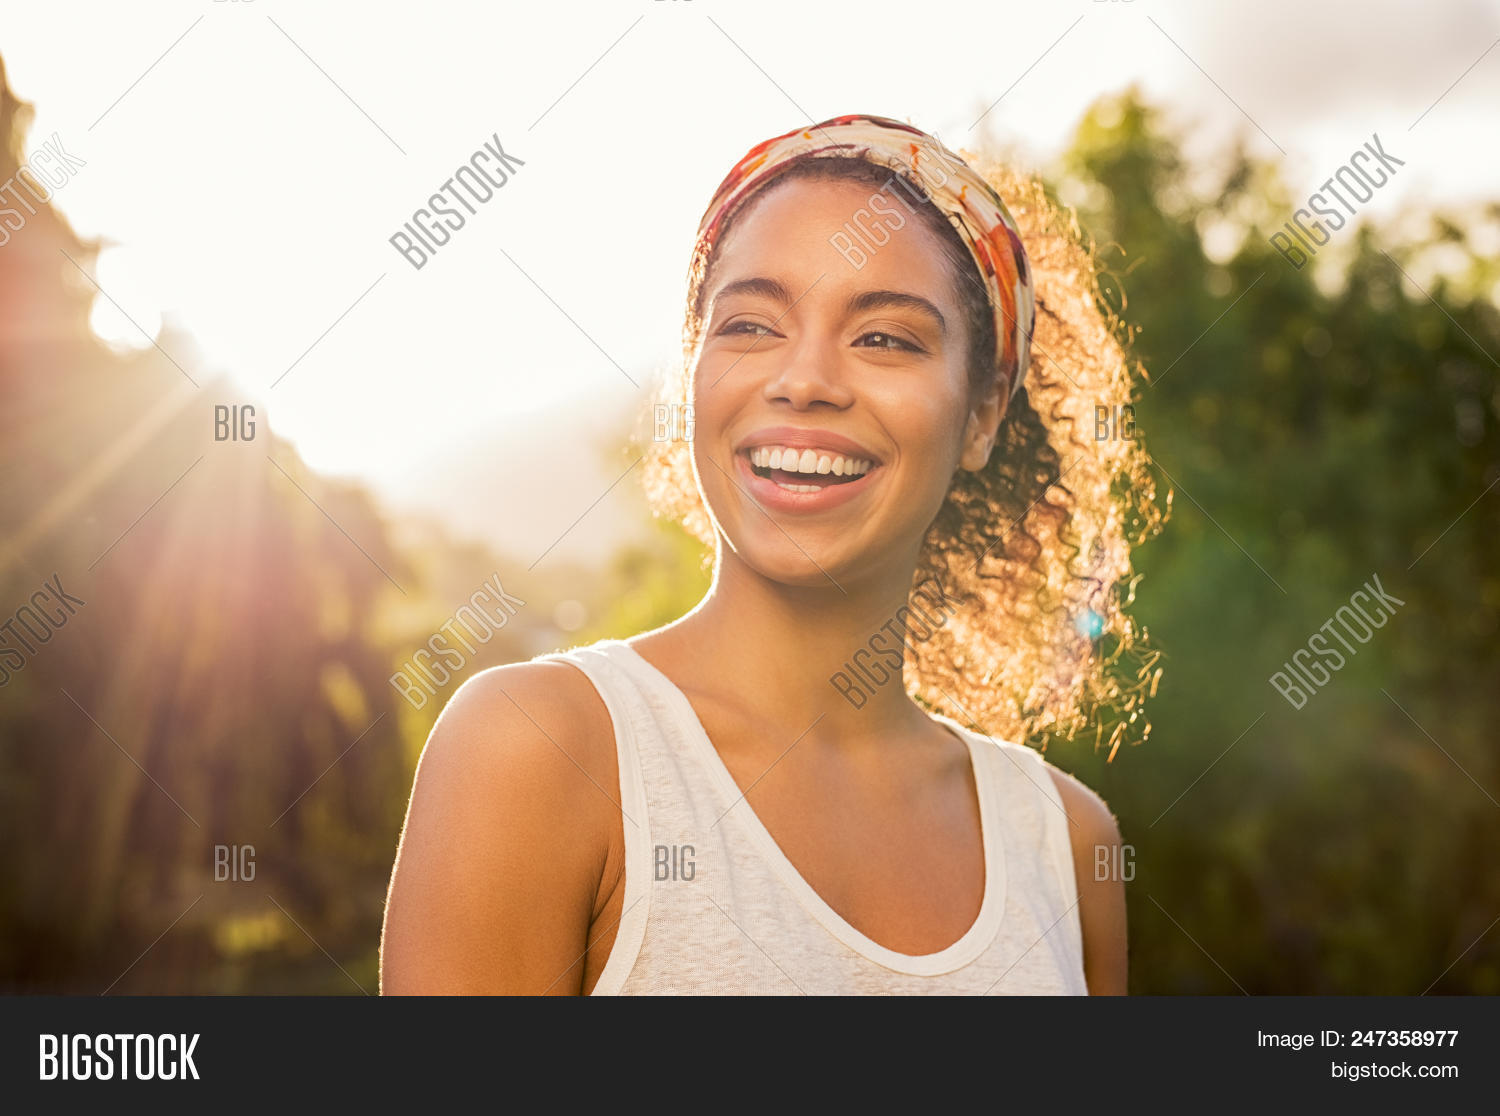 Portrait of beautiful african american woman smiling and looking away at park during sunset. Outdoor